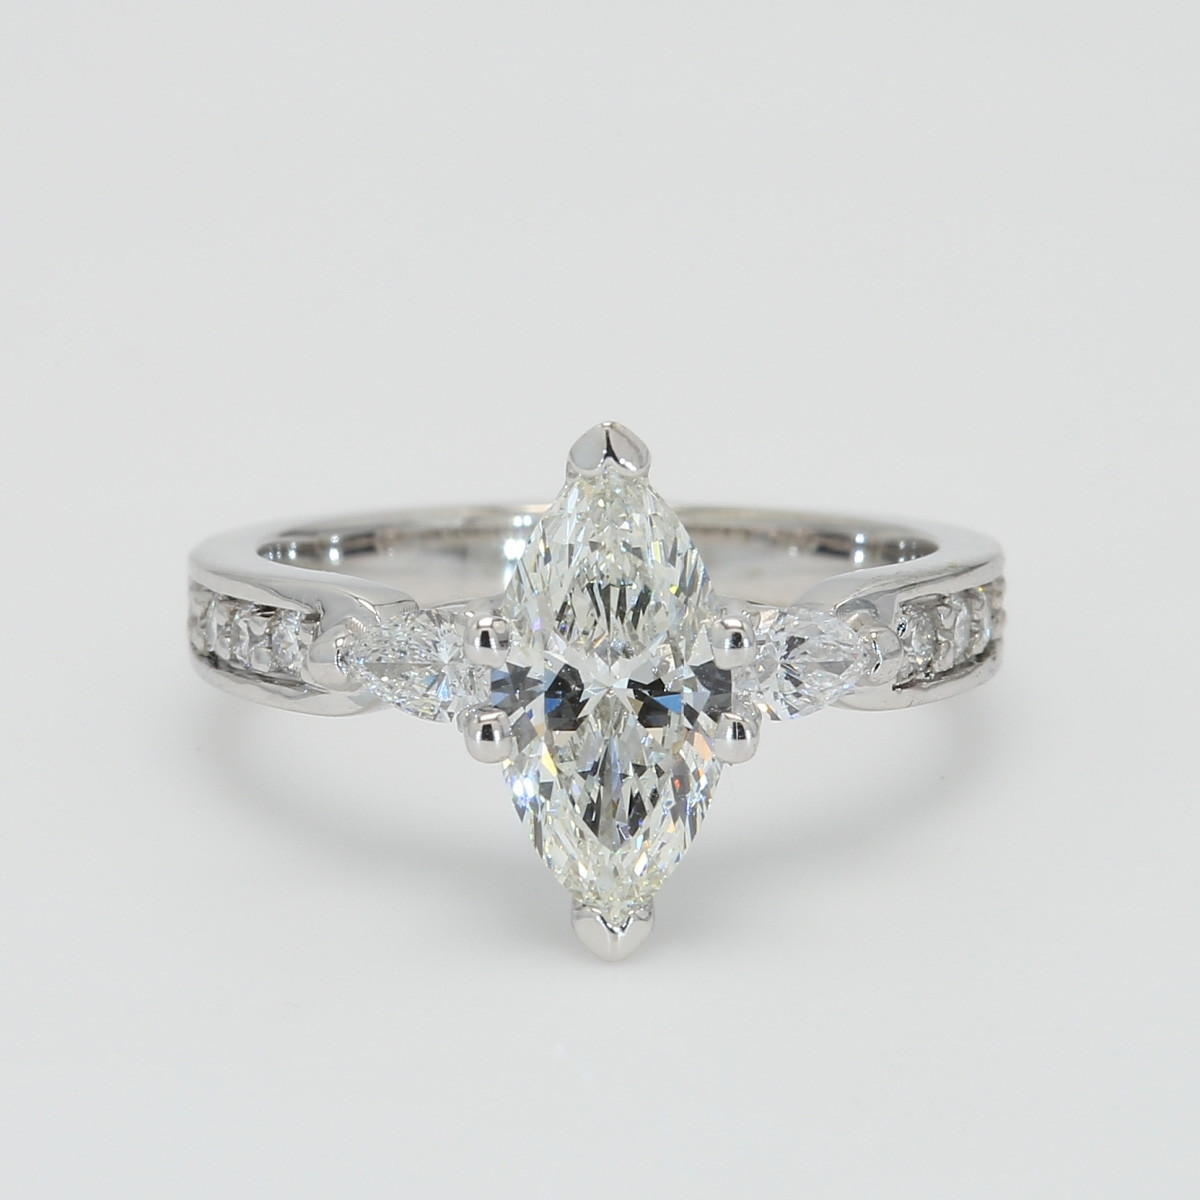 Custom Marquise Cut Engagement Ring with Pear Set